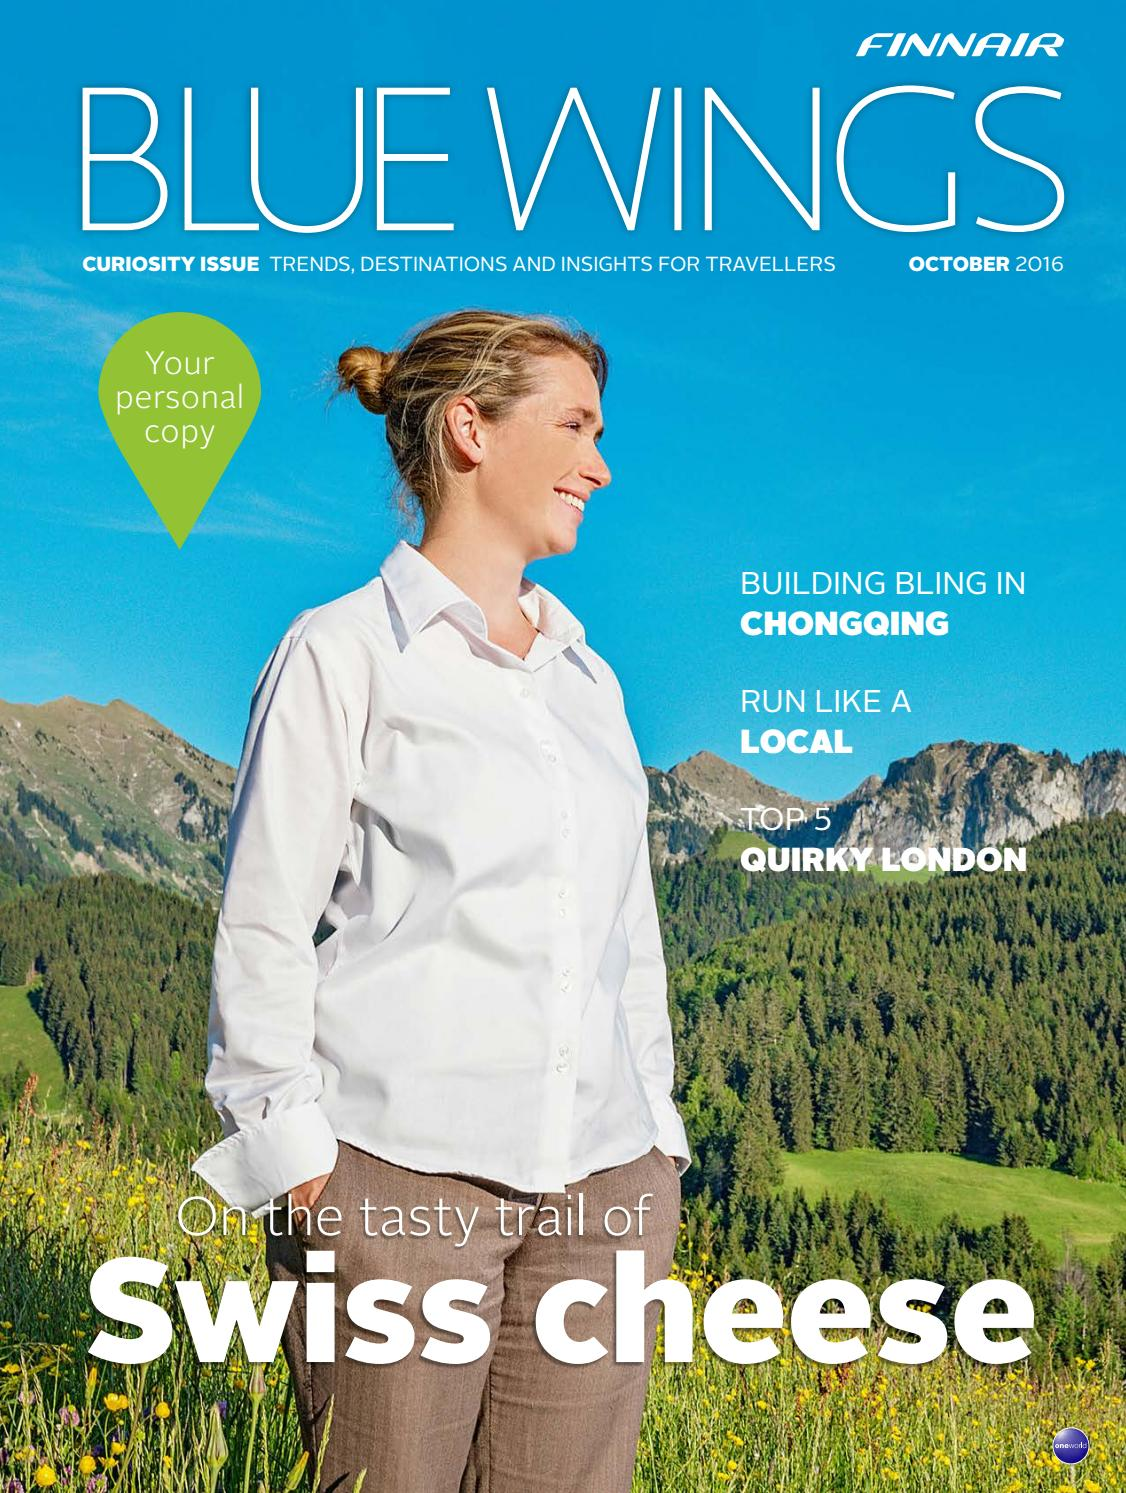 bdb8c7f2cc2 Blue Wings Curiosity issue October 2016 by Finnair BlueWings - issuu